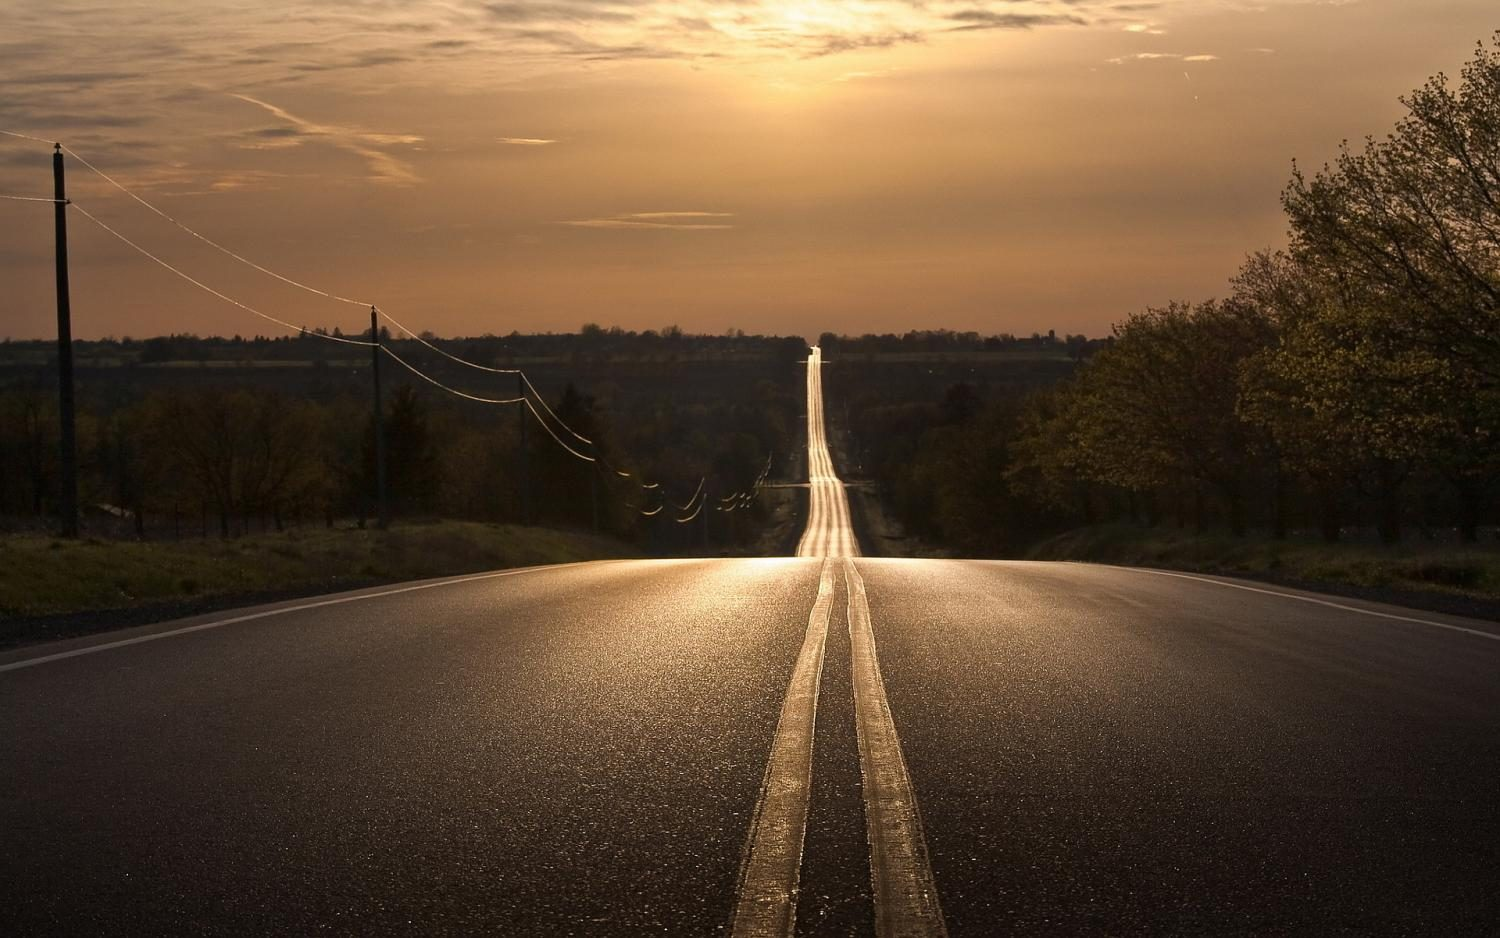 The Road Out of Adolescence